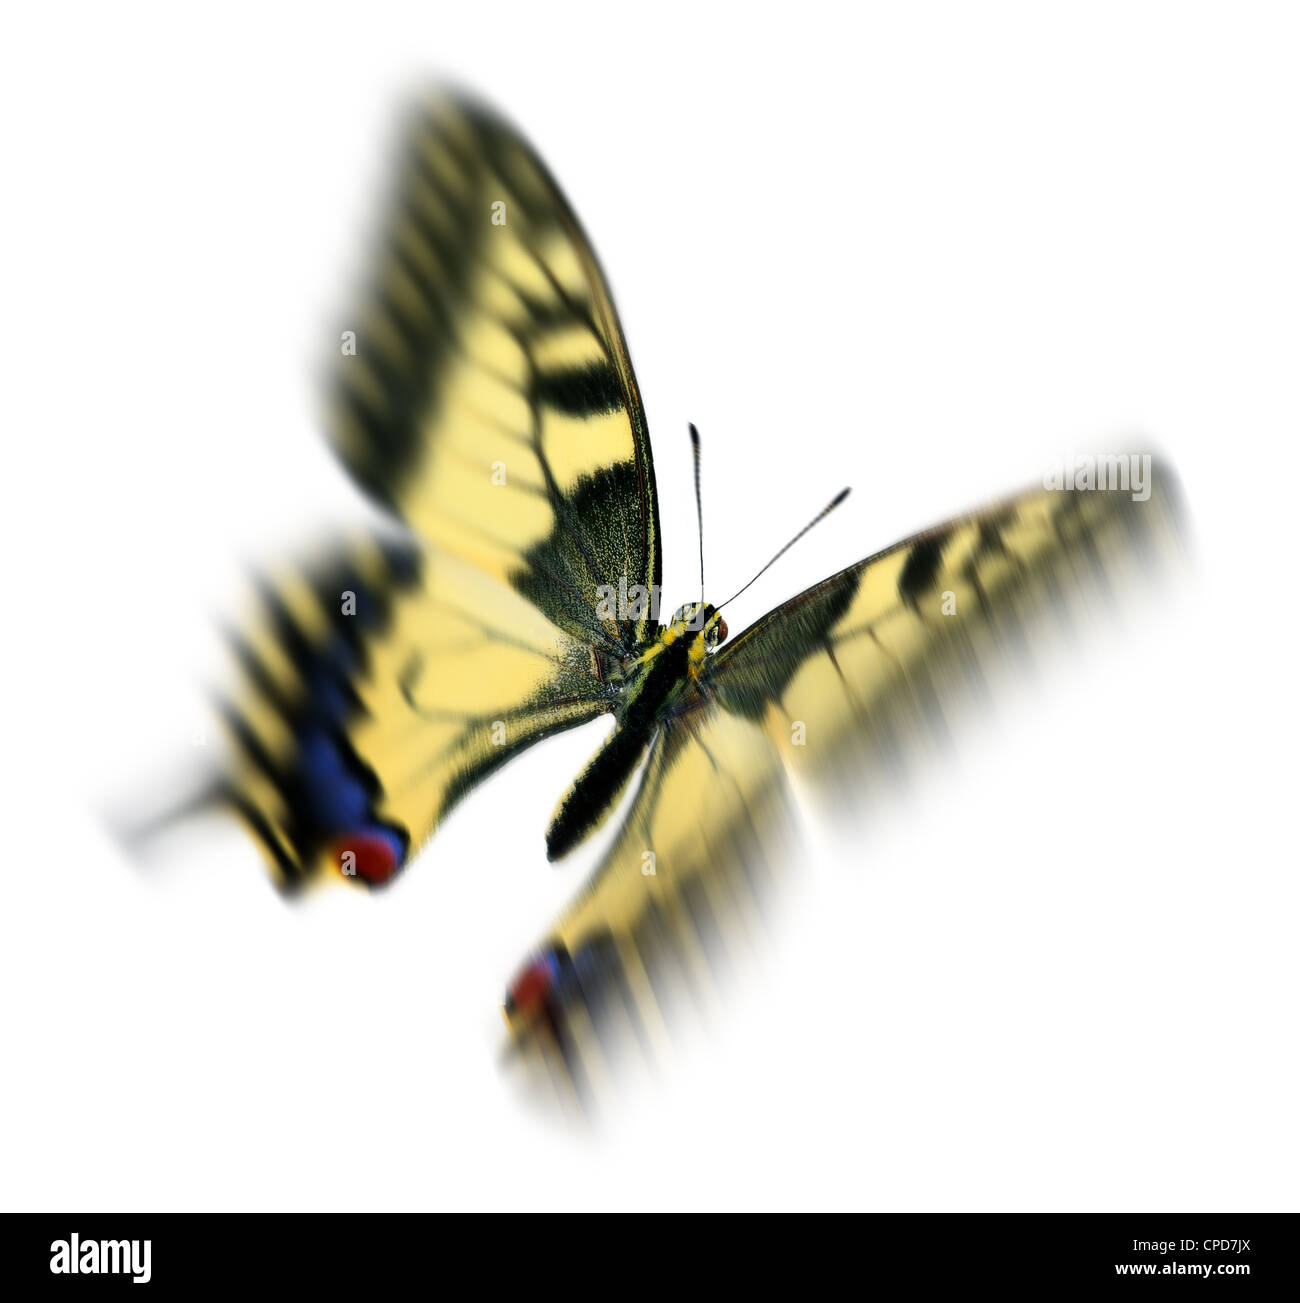 Common swallowtail (Papilio machaon) in flight, with motion blur - Stock Image